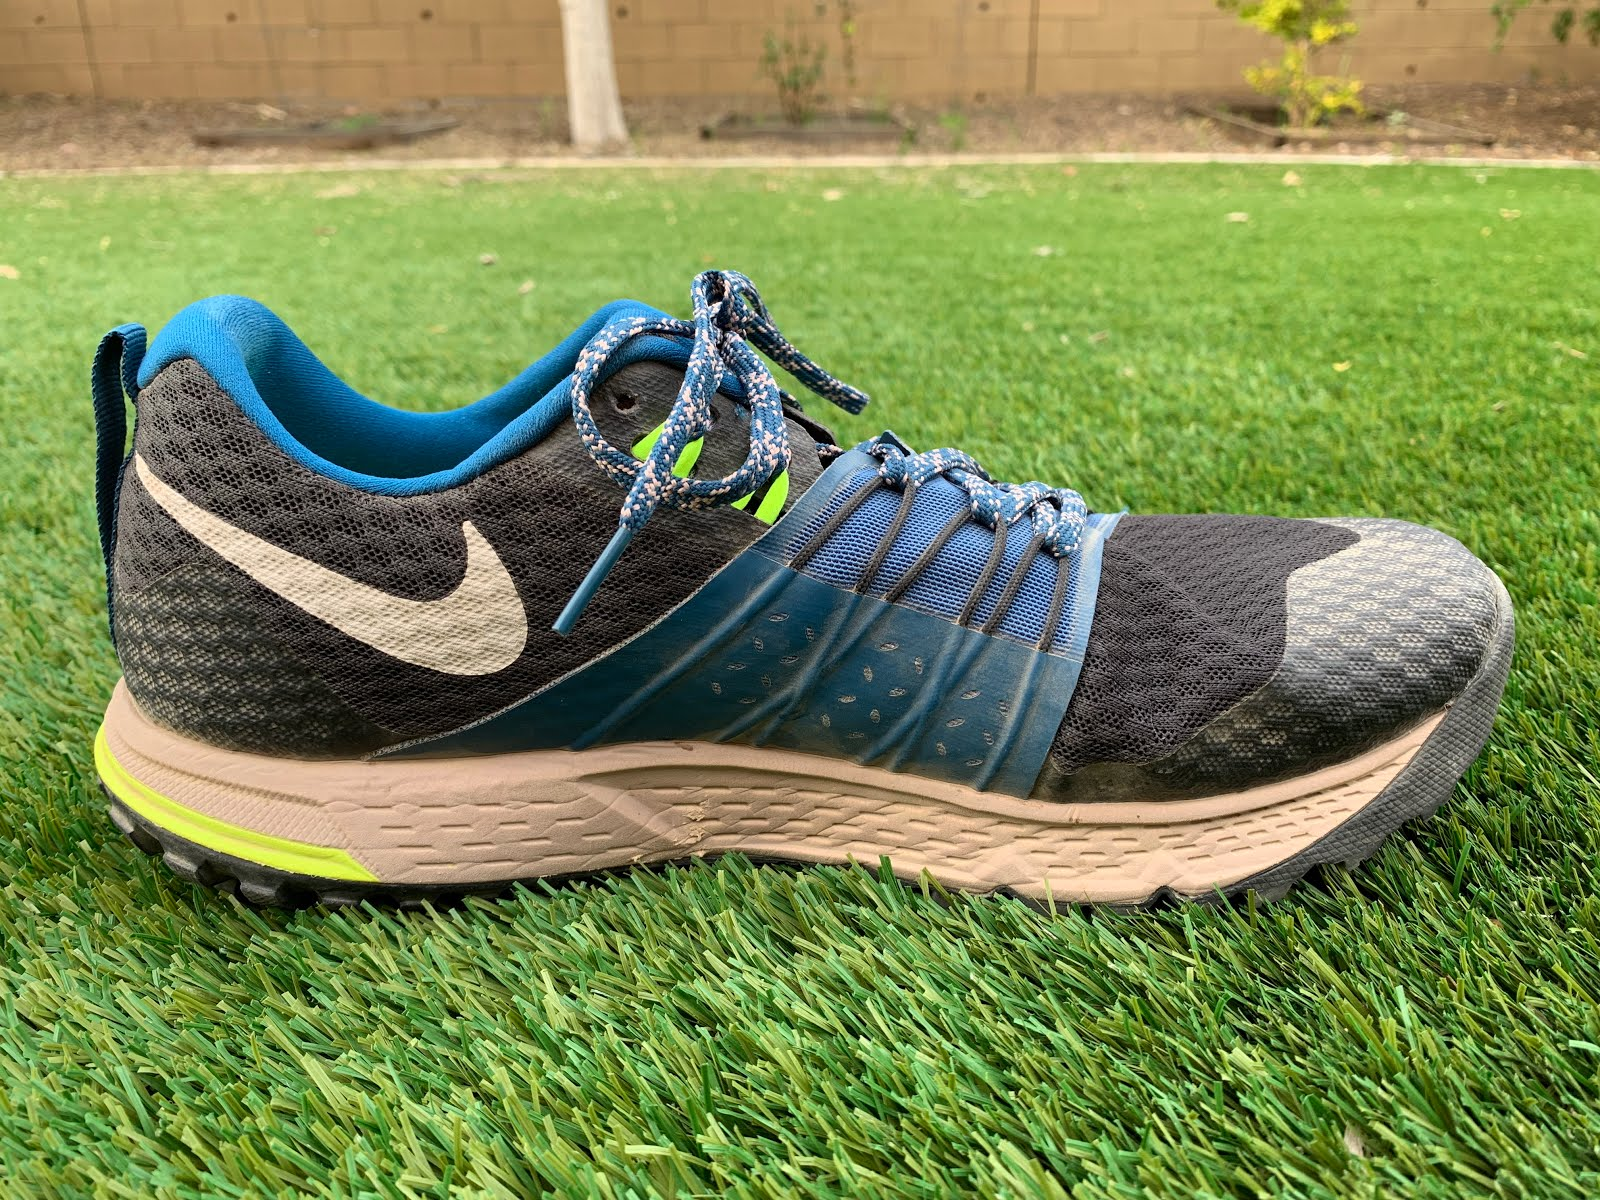 8d0960ad668de Road Trail Run  Nike Air Zoom Wildhorse 4 Review - Monster on the ...